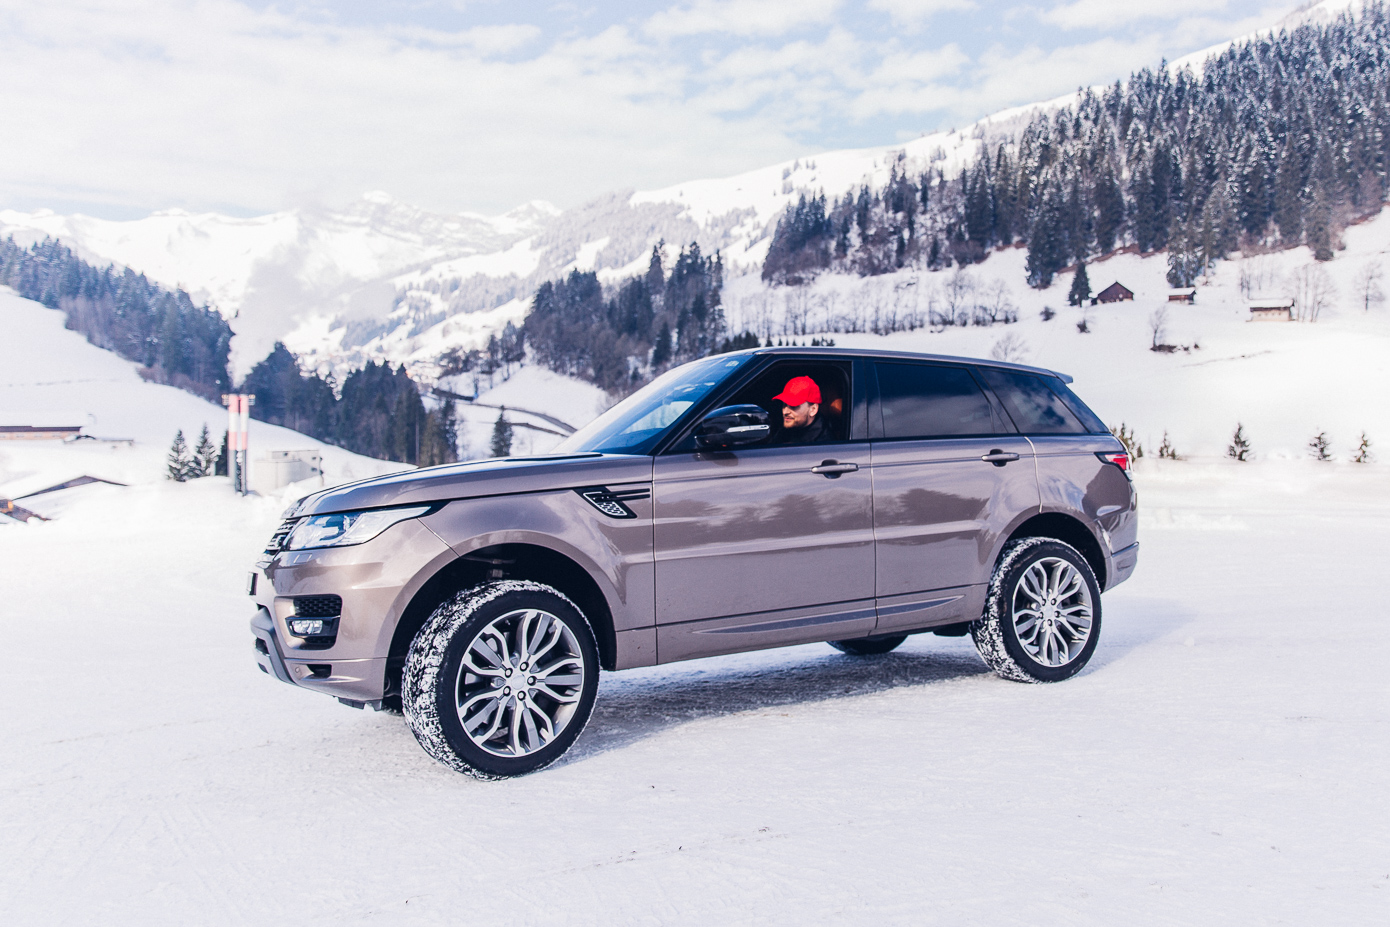 Jaguar & Landrover, icedrive, ice experience, F-Type, Range Rover,